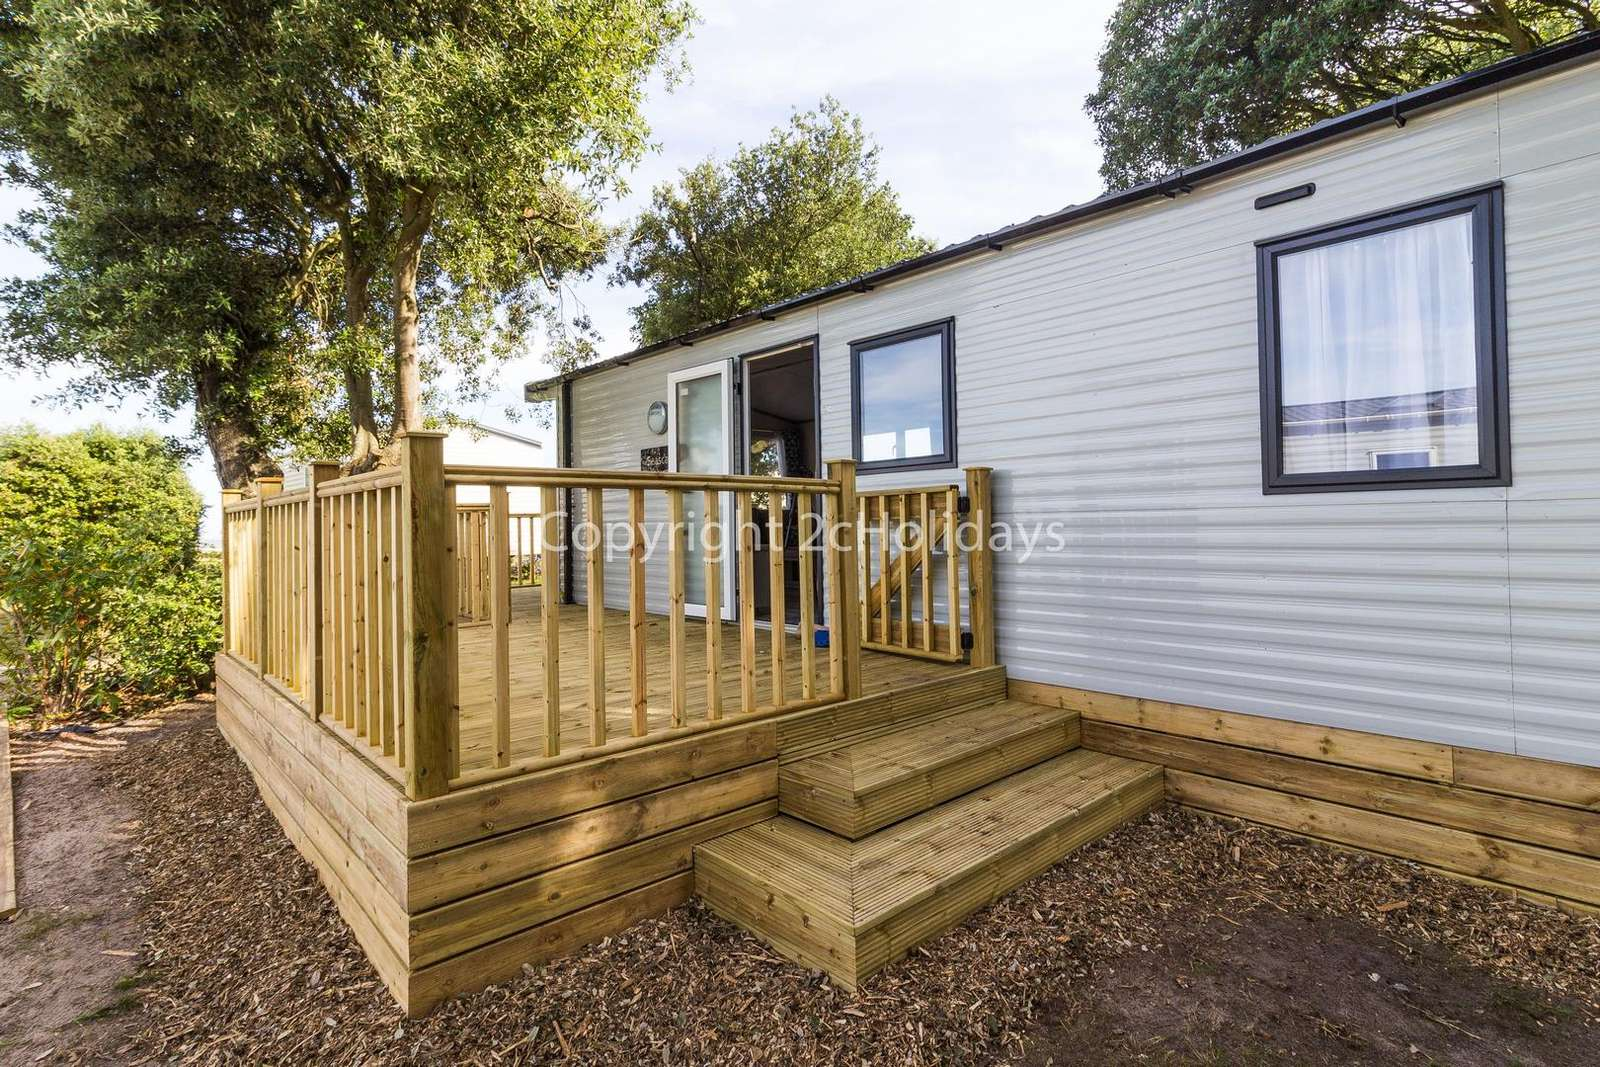 Come and stay in this private accommodation at Azure Seas Holiday Village